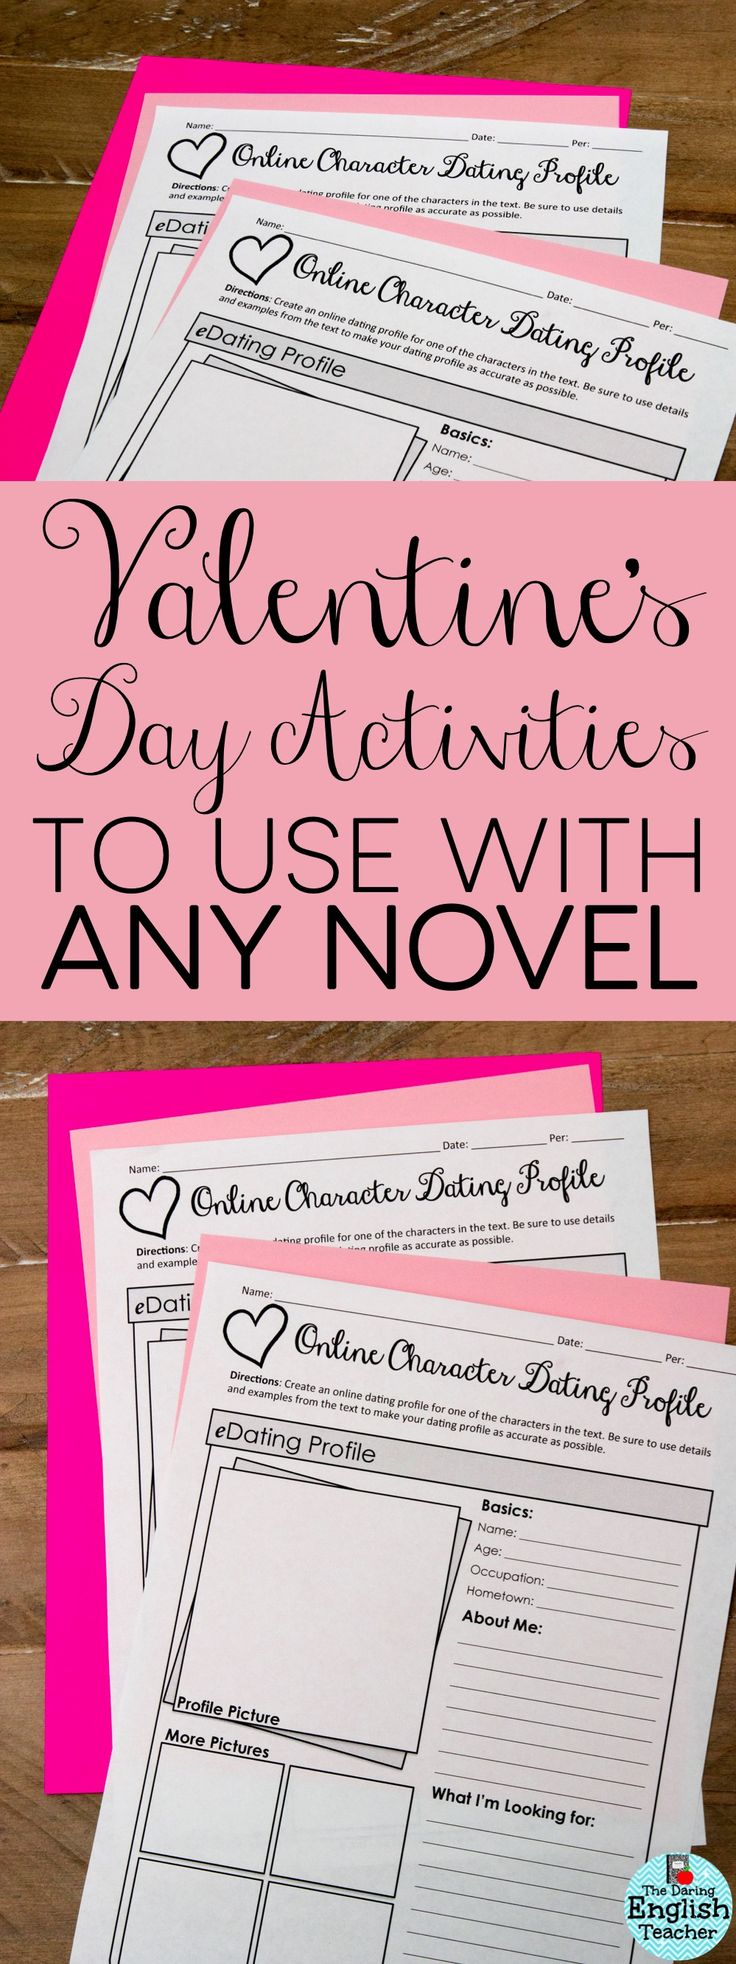 These three Valentine's Day activities can be incorporated into any novel unit you are currently teaching. Have fun with Valentine's Day in middle school ELA and high school English.